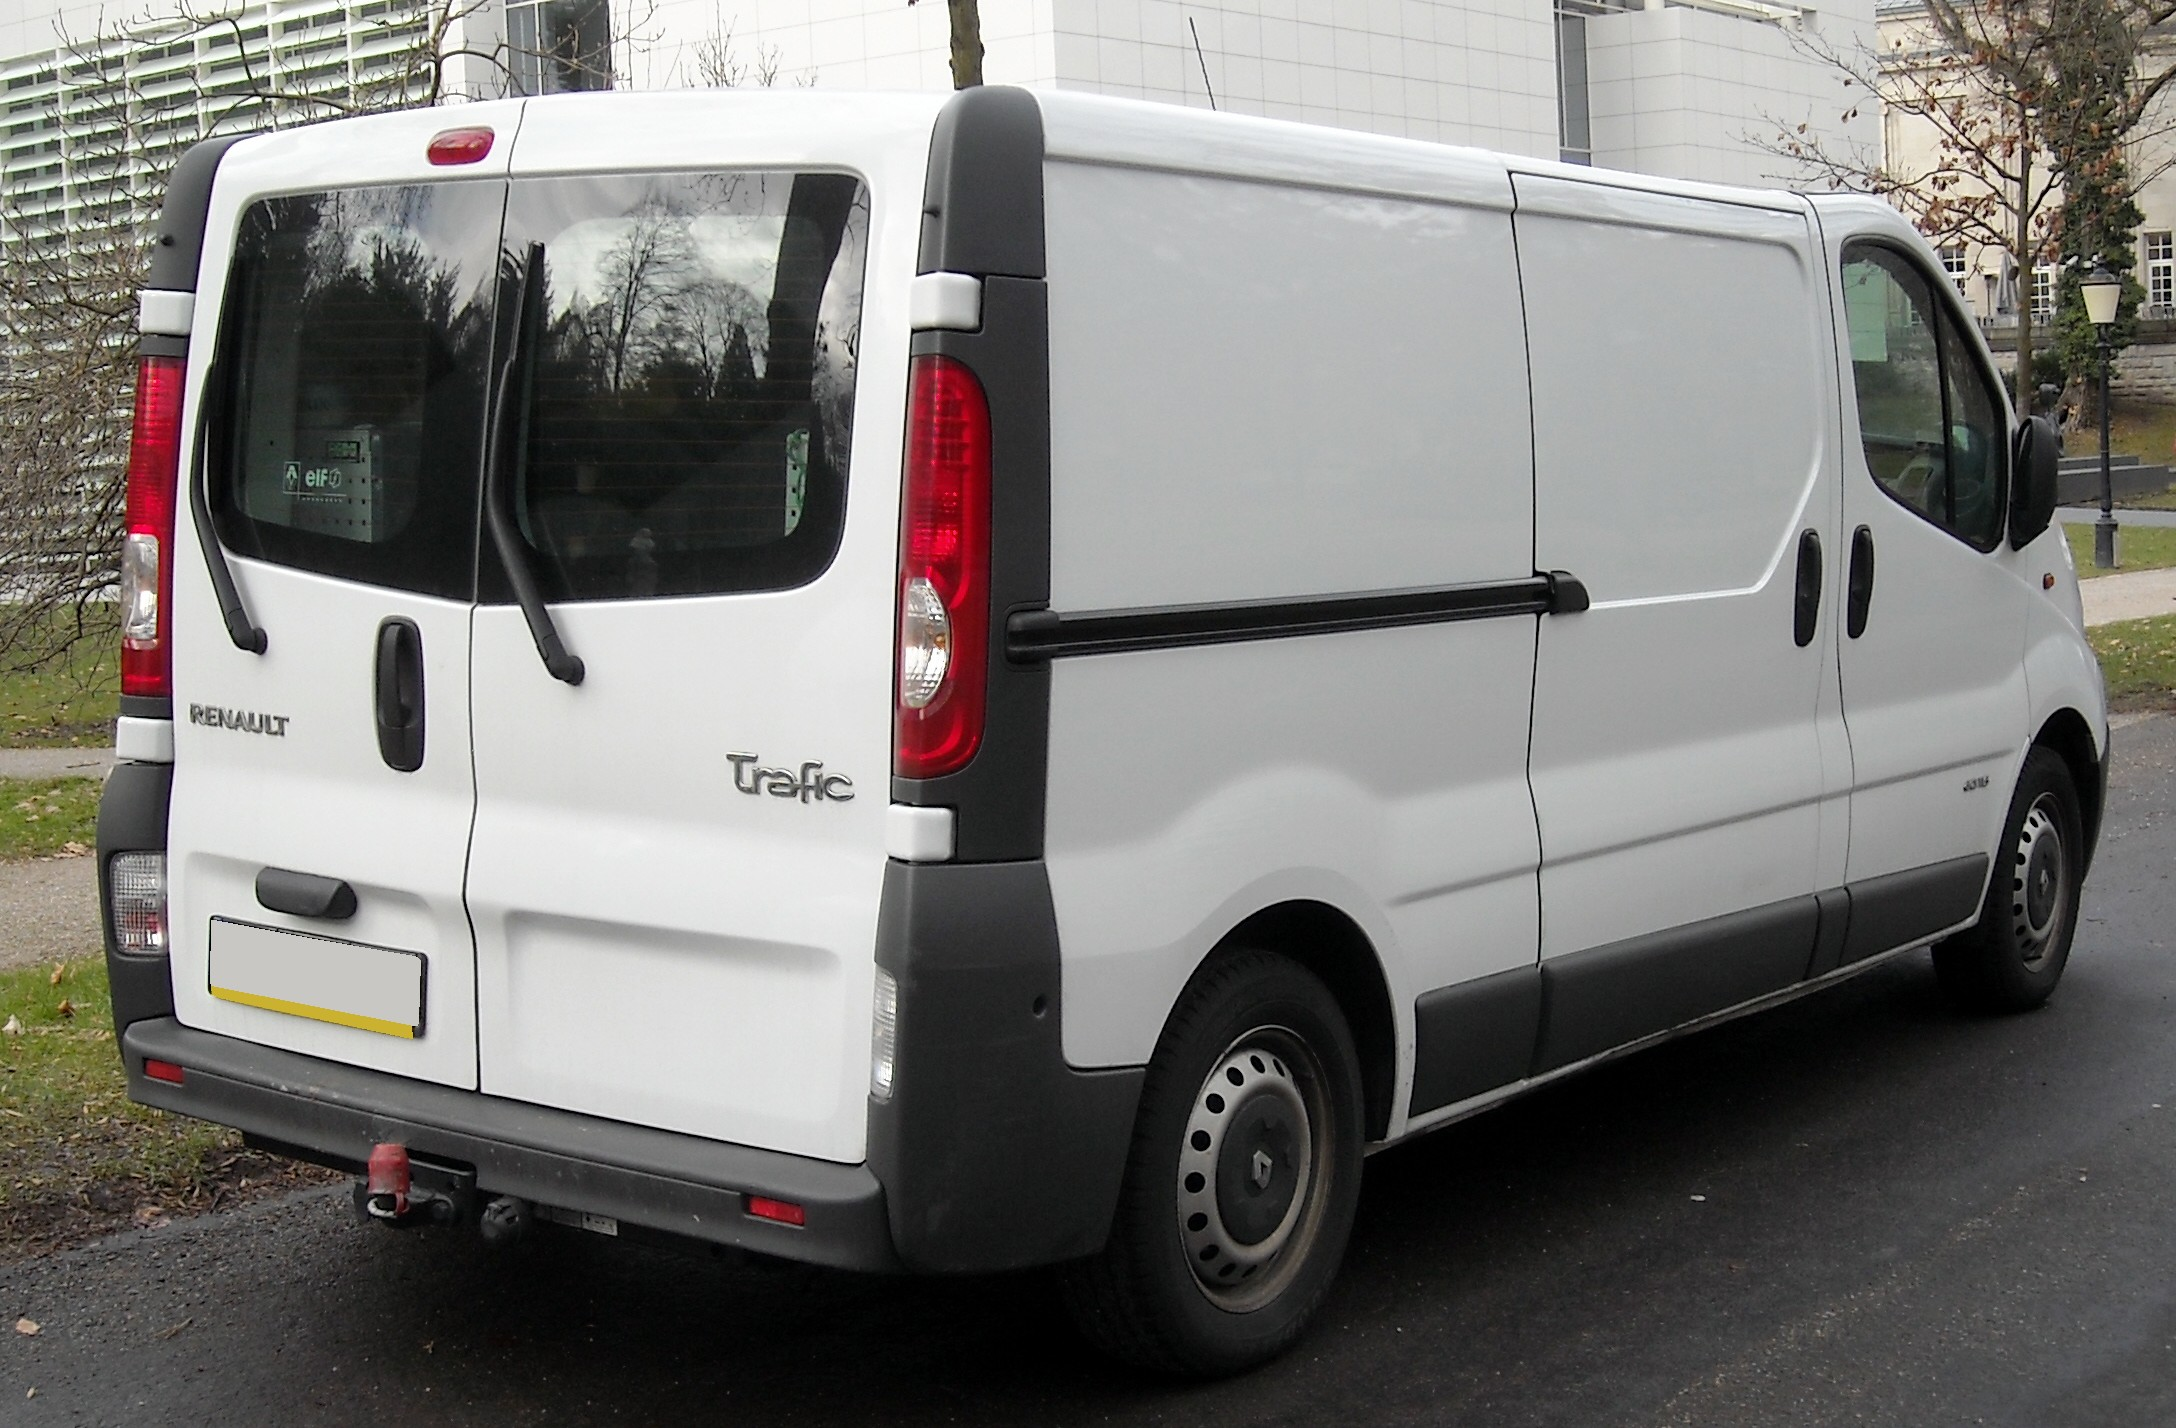 2009 renault trafic 2 pictures information and specs auto. Black Bedroom Furniture Sets. Home Design Ideas